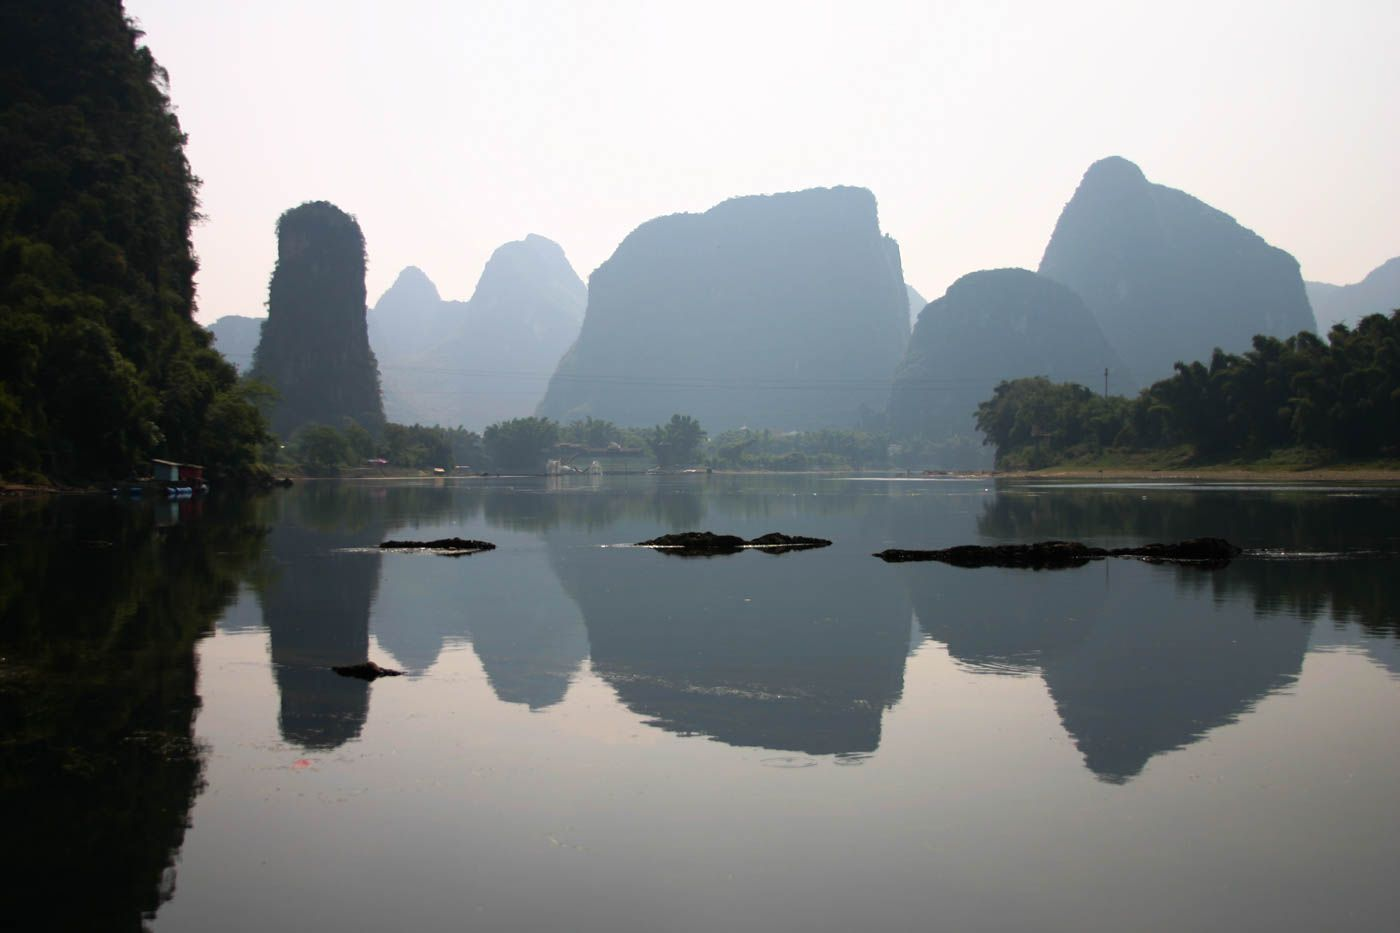 guilin travel costs prices karst mountains hiking reed flute cave. Black Bedroom Furniture Sets. Home Design Ideas